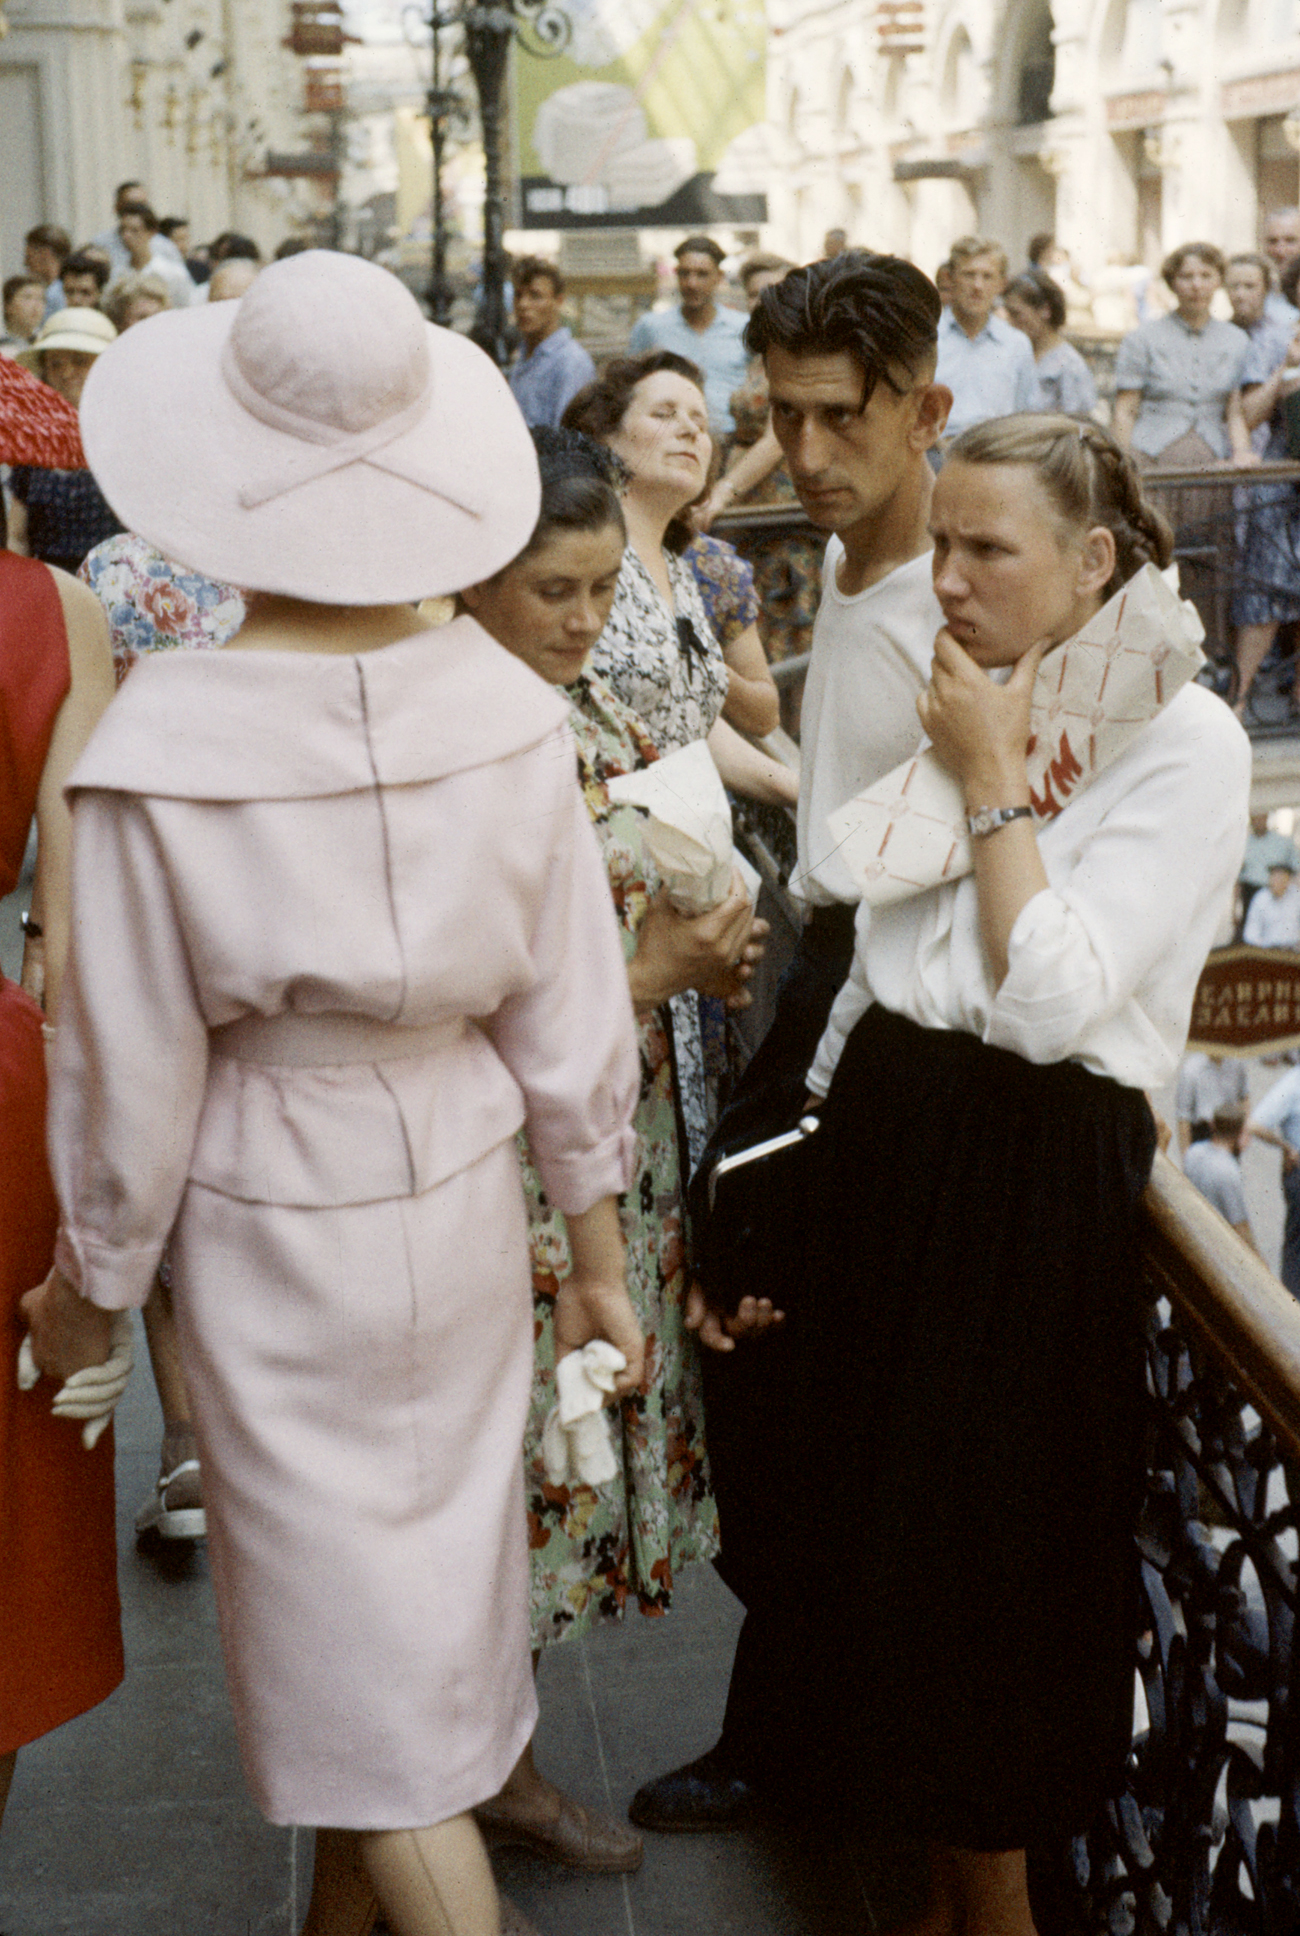 RUSSIA - CIRCA 1959: Dior models in Soviet Union for officially sanctioned fashion show attracting crowd of curious Russians.